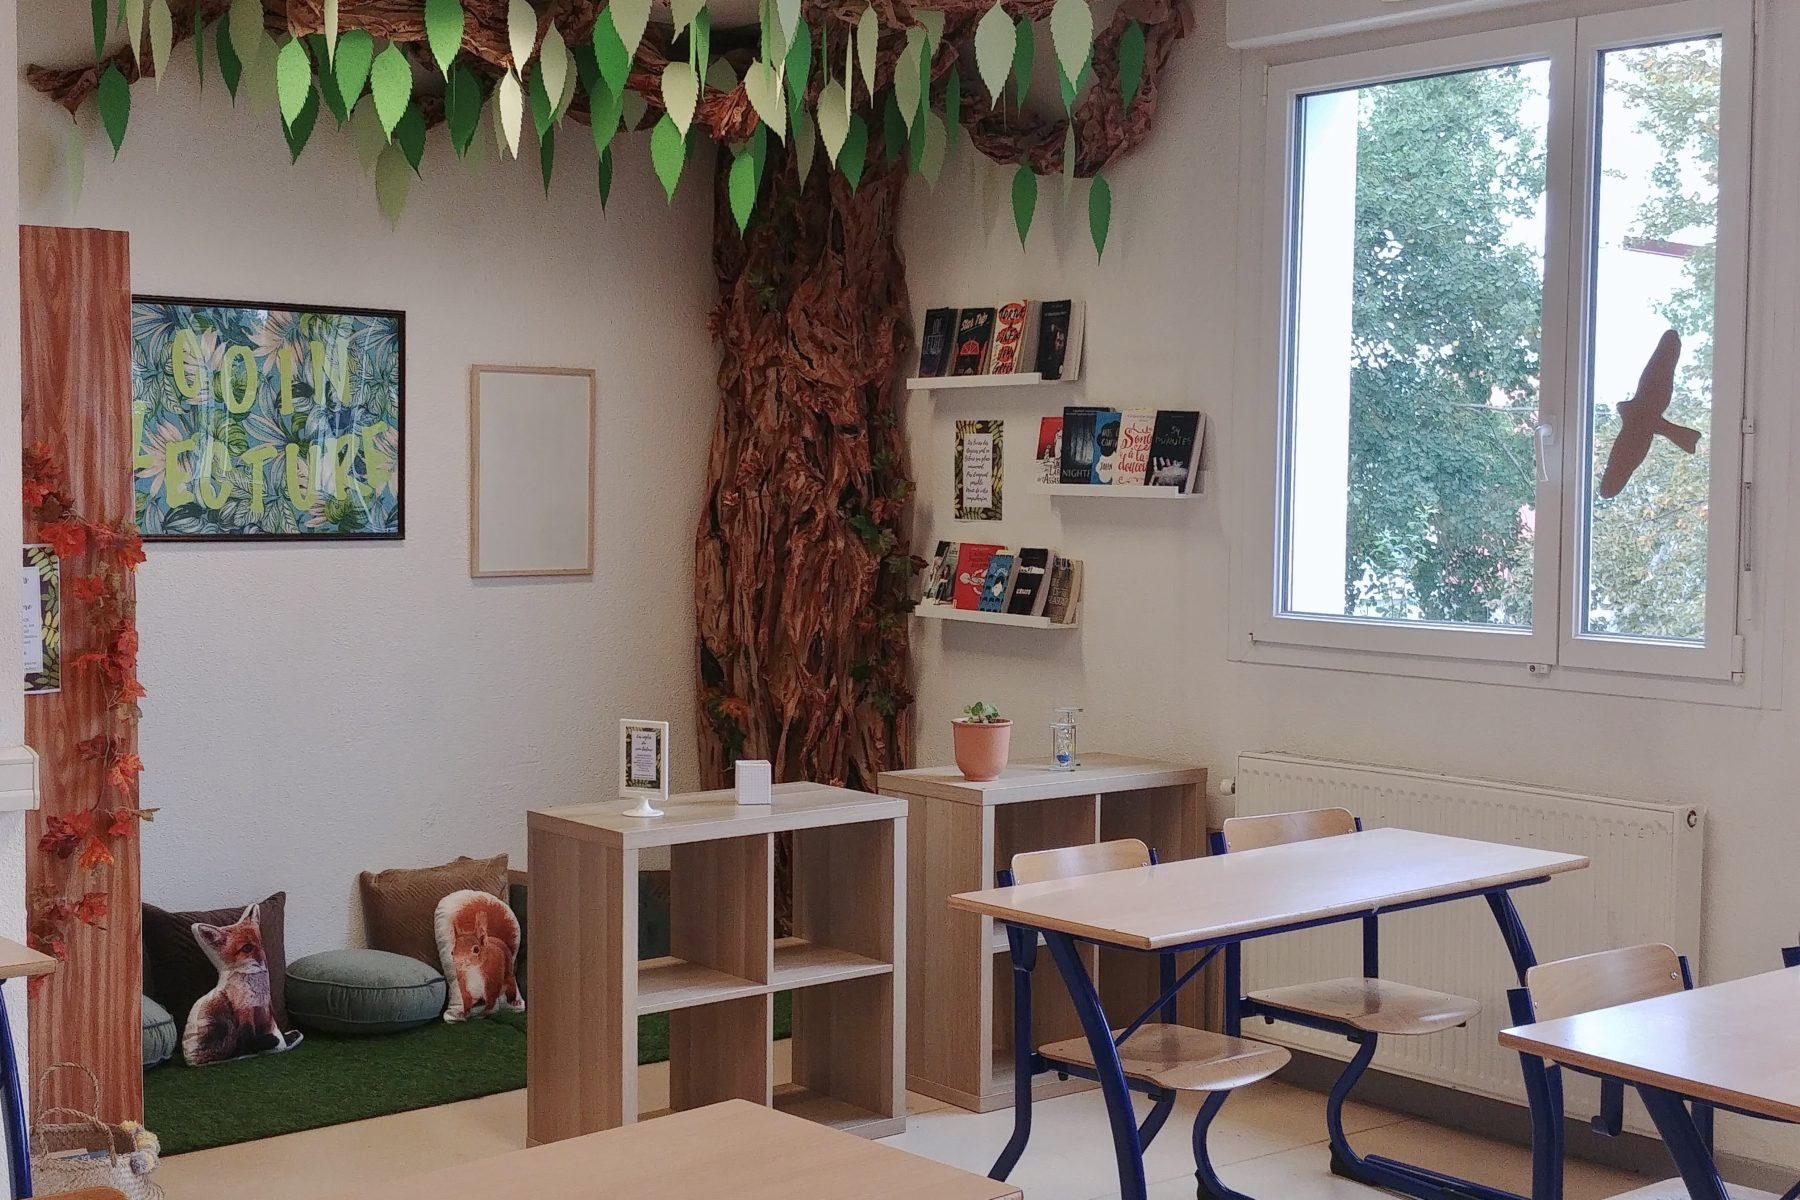 reading corner in classroom tree read books school salle de classe cdi coin lecture